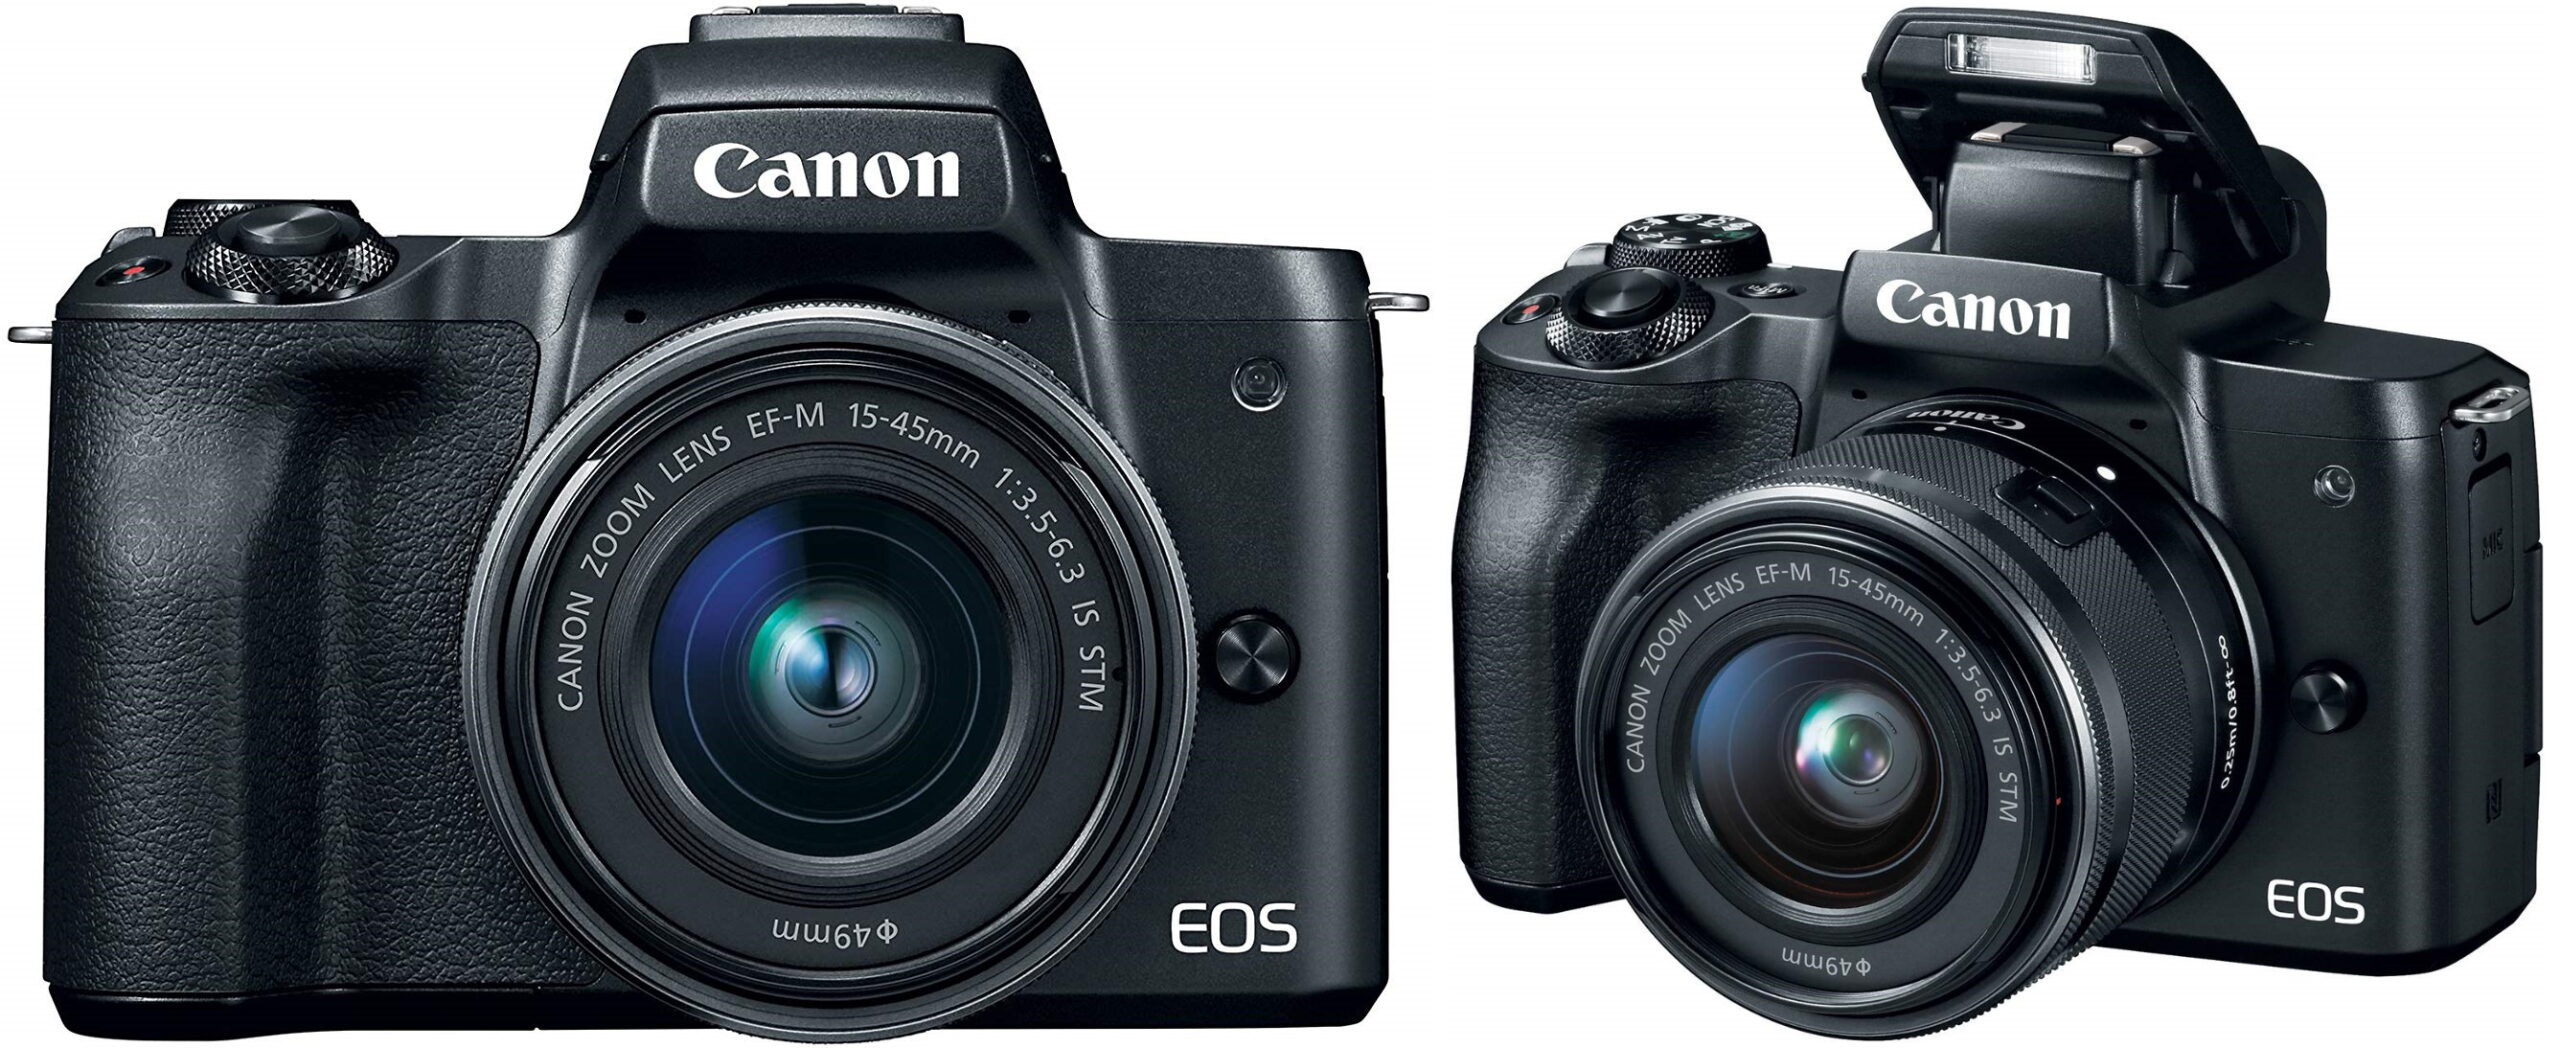 Canon EOS M50 Mirrorless Camera Kit w/EF-M15-45mm and 4K Video - Black